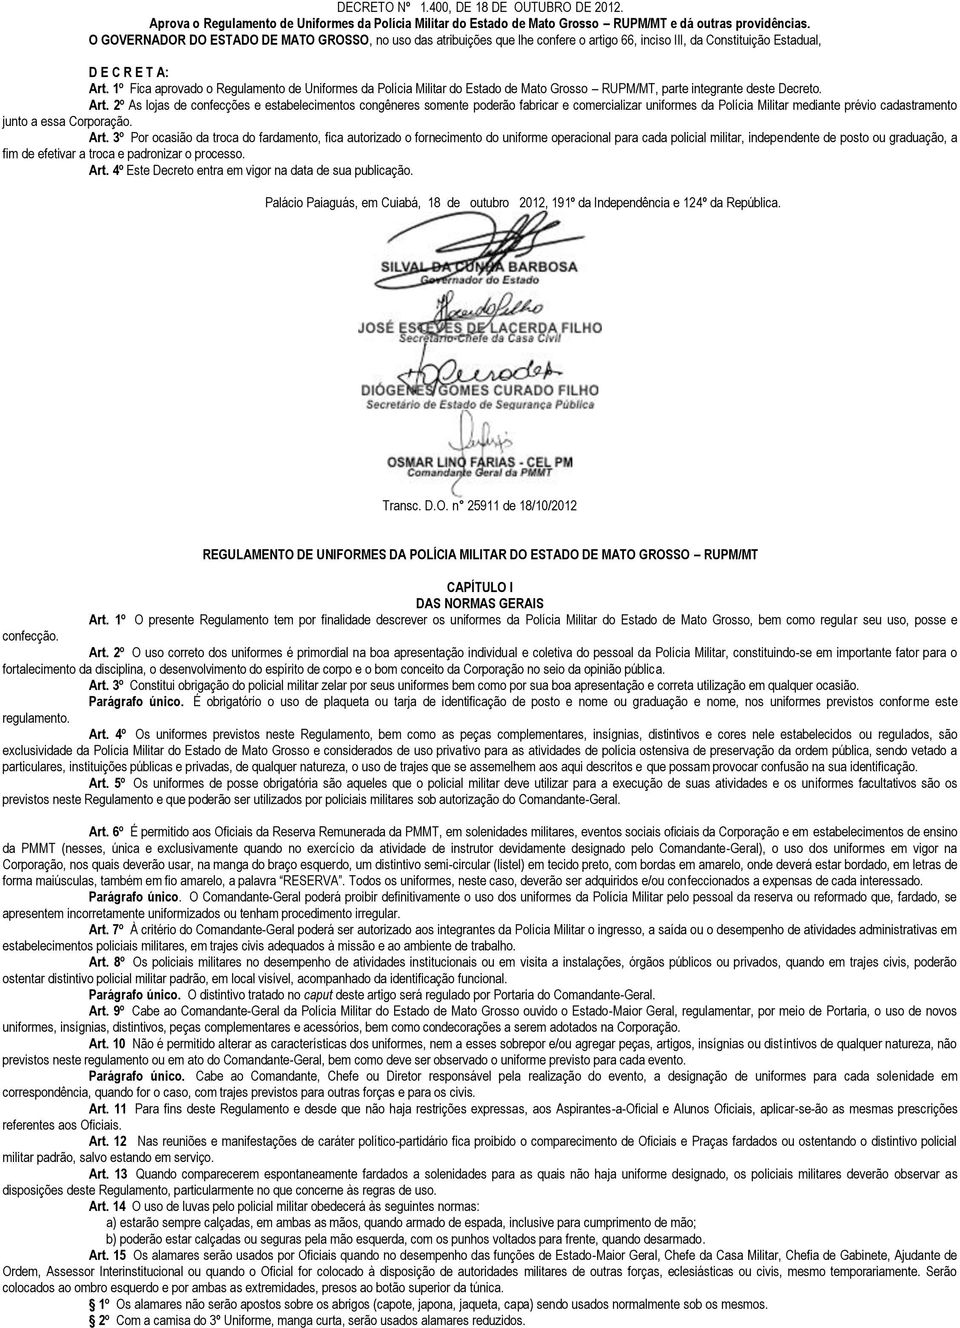 1º Fica aprovado o Regulamento de Uniformes da Polícia Militar do Estado de Mato Grosso RUPM/MT, parte integrante deste Decreto. Art.